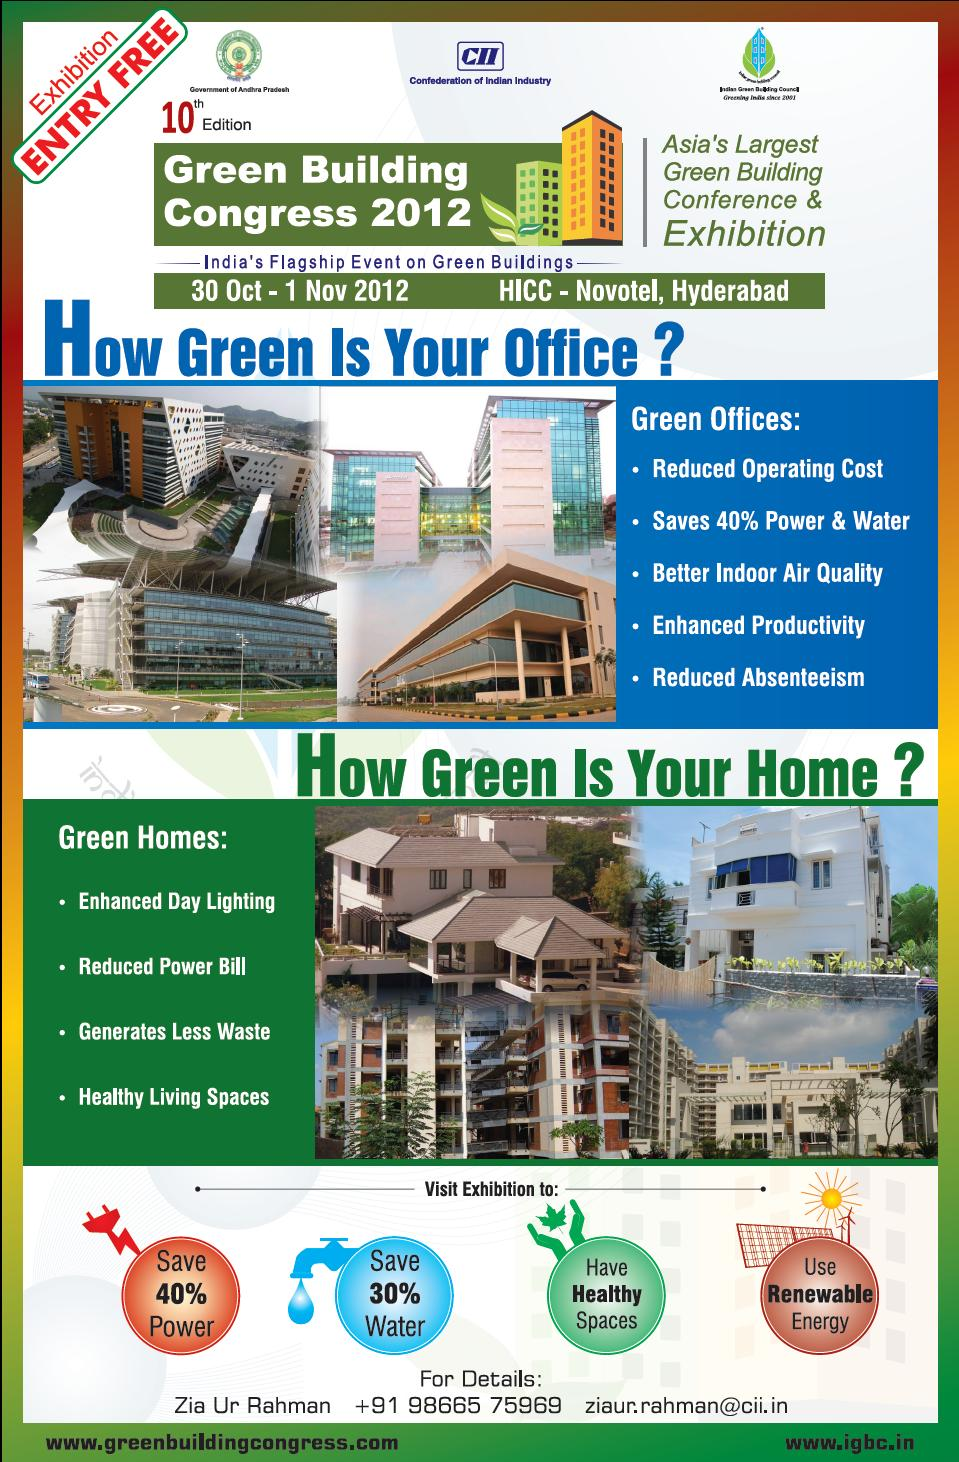 Images for green buildings in india